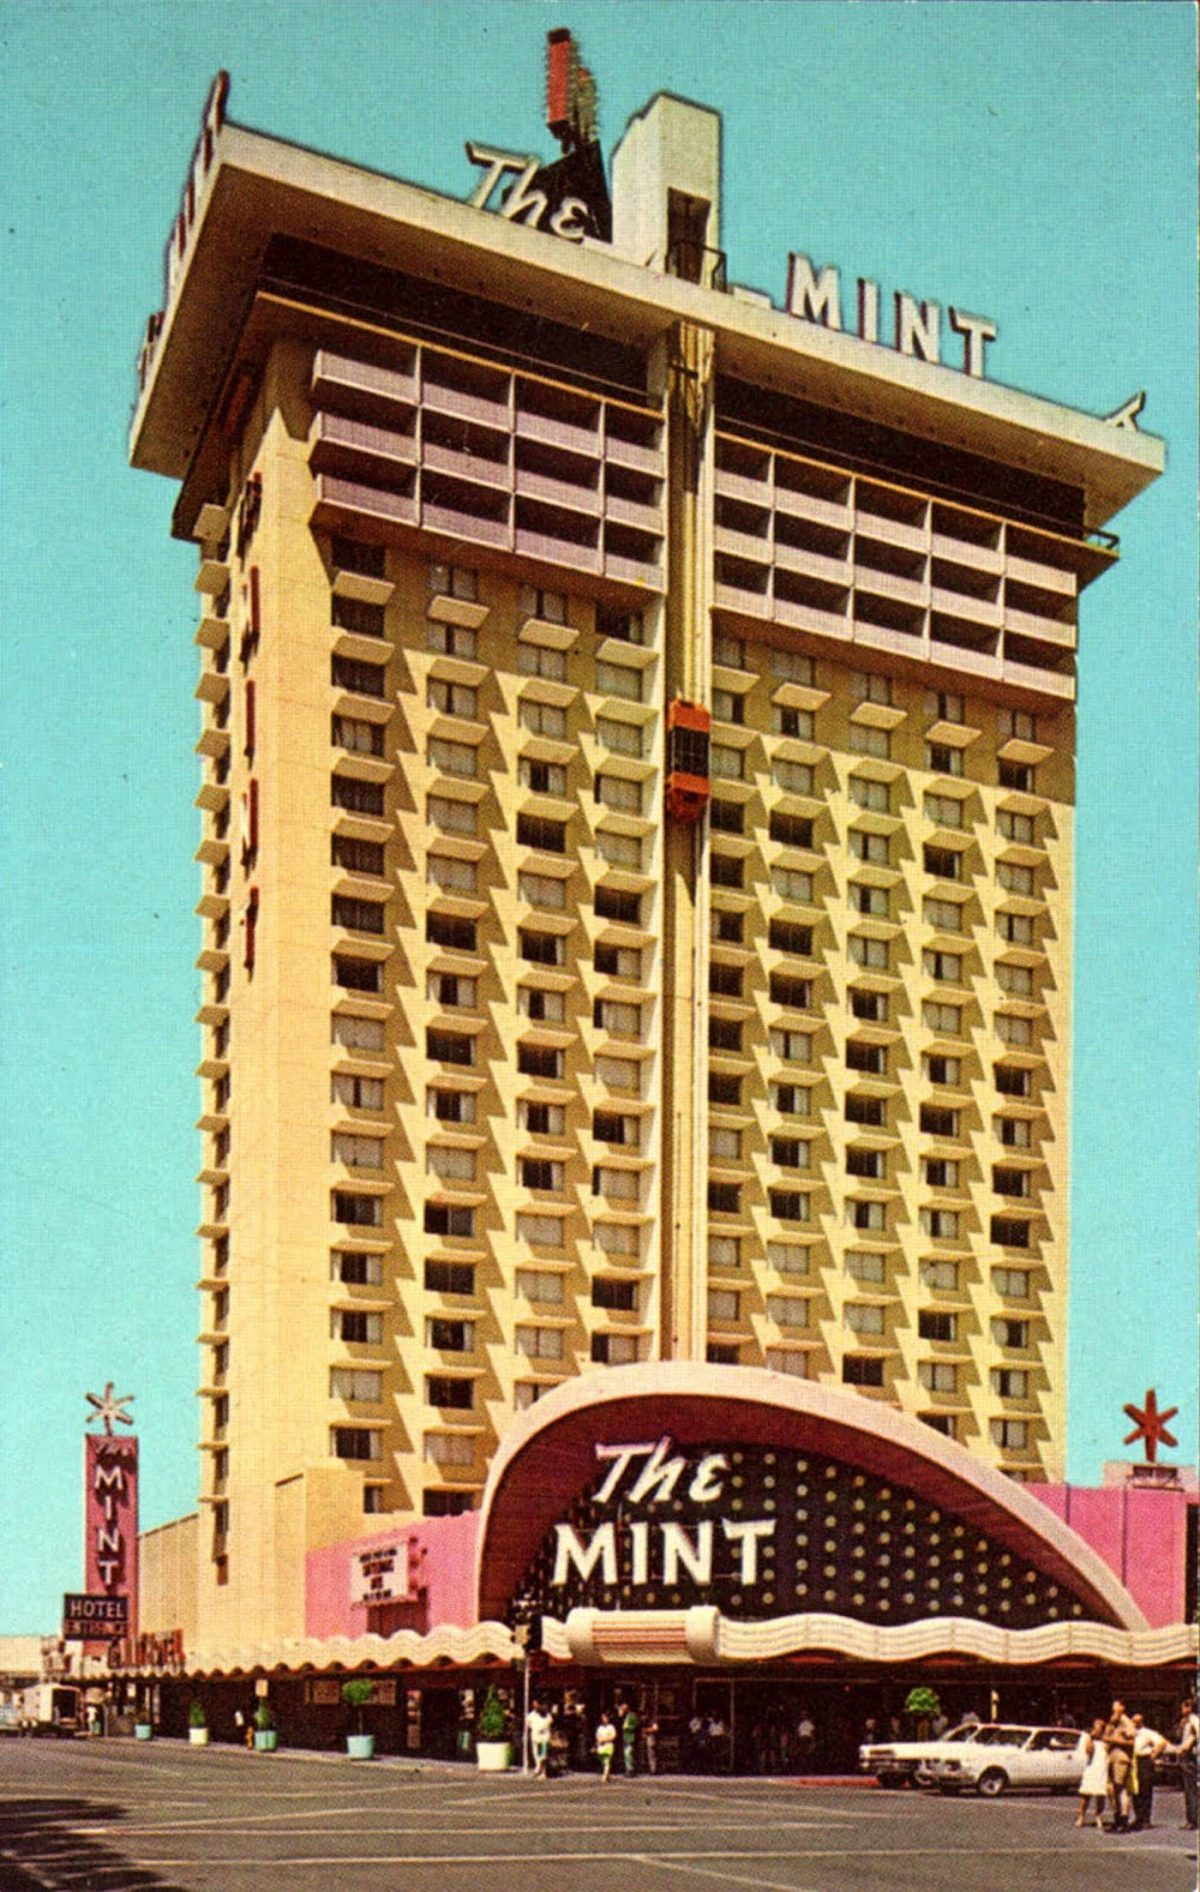 Las vegas, the Mint Casino,